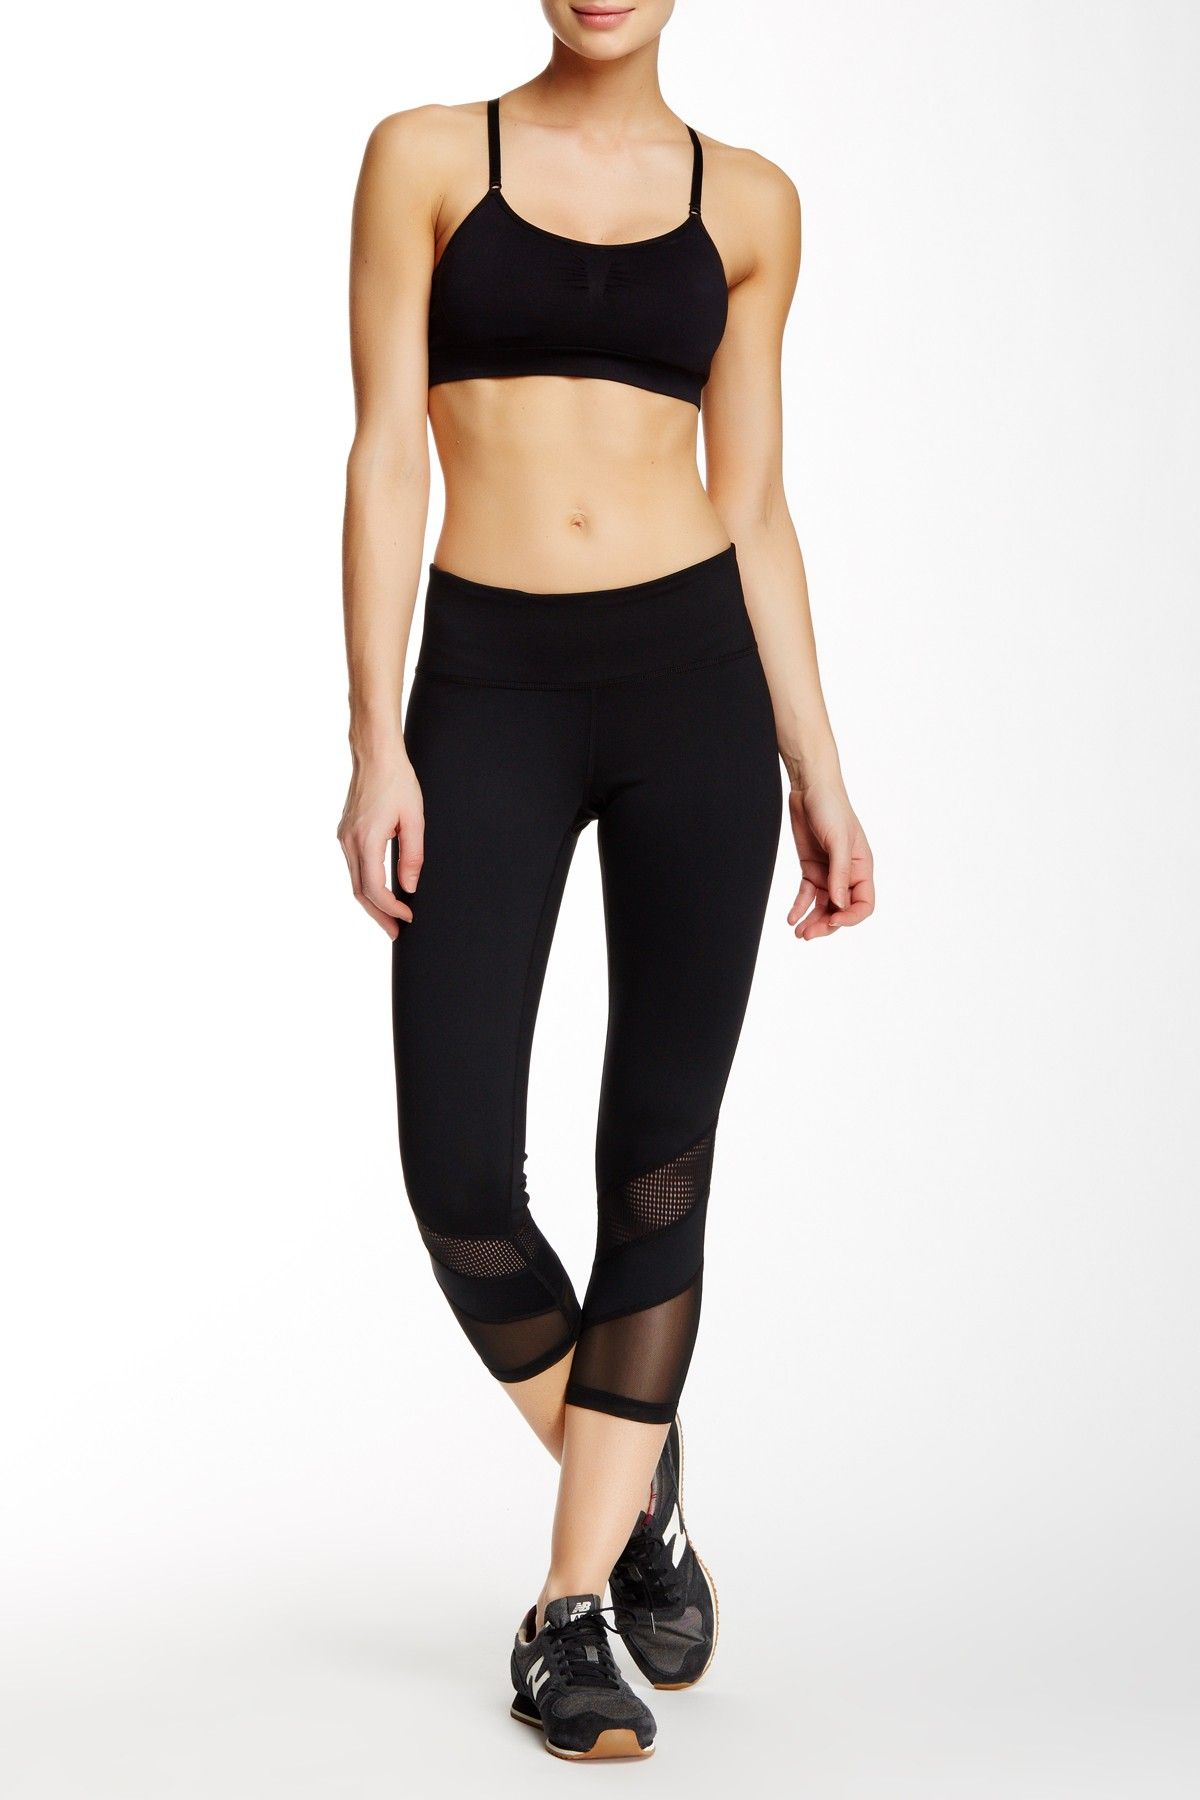 Stargazer Capri Pant by Z By Zella on @nordstrom_rack... I have been seeing these on women at the gym, I want